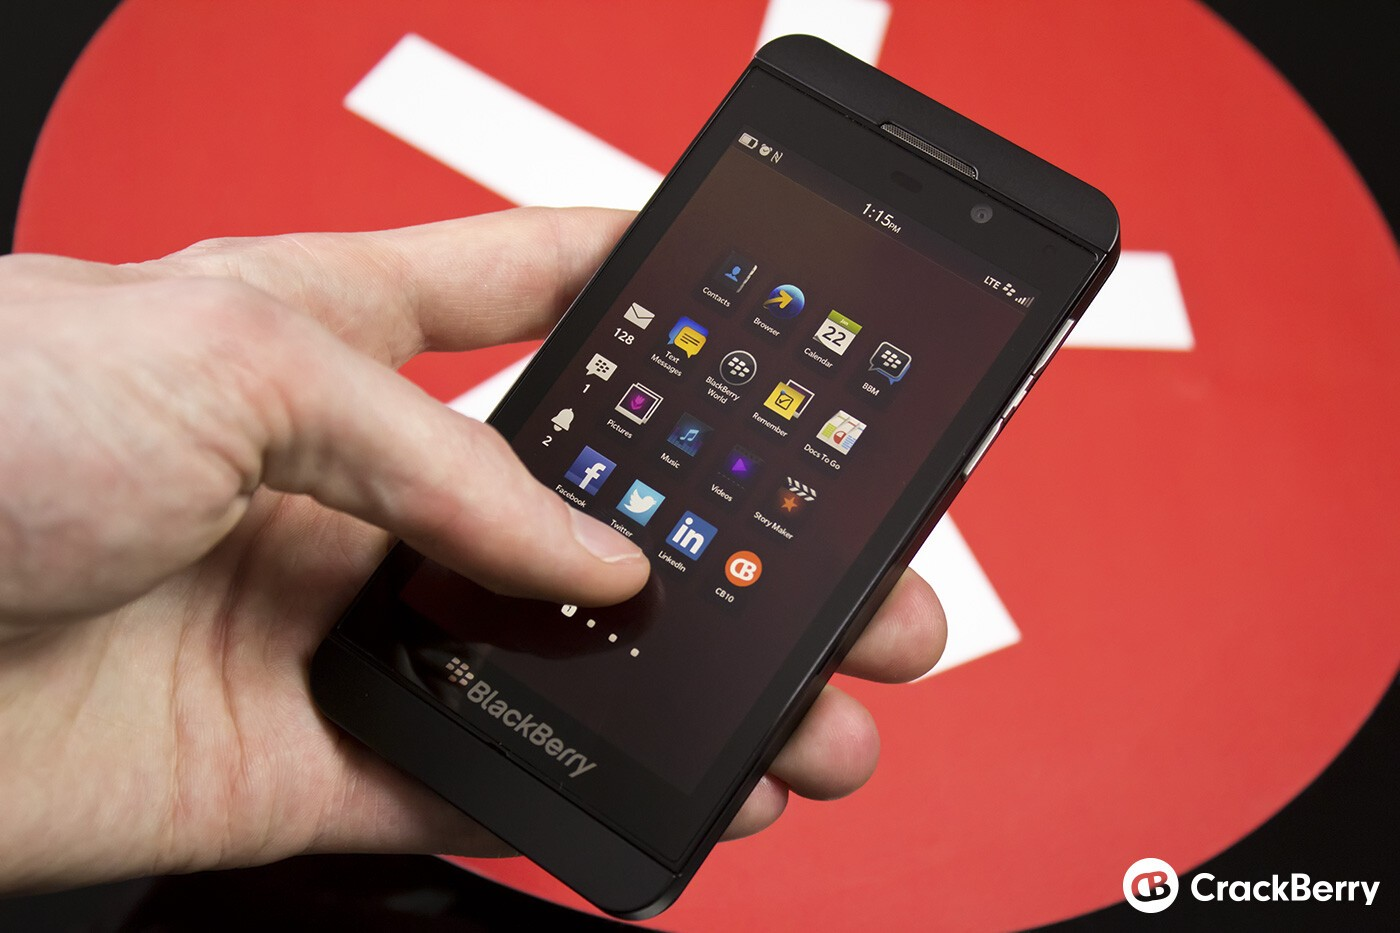 SingTel, M1 and StarHub ready for the BlackBerry Z10 - Preorders and registration now open